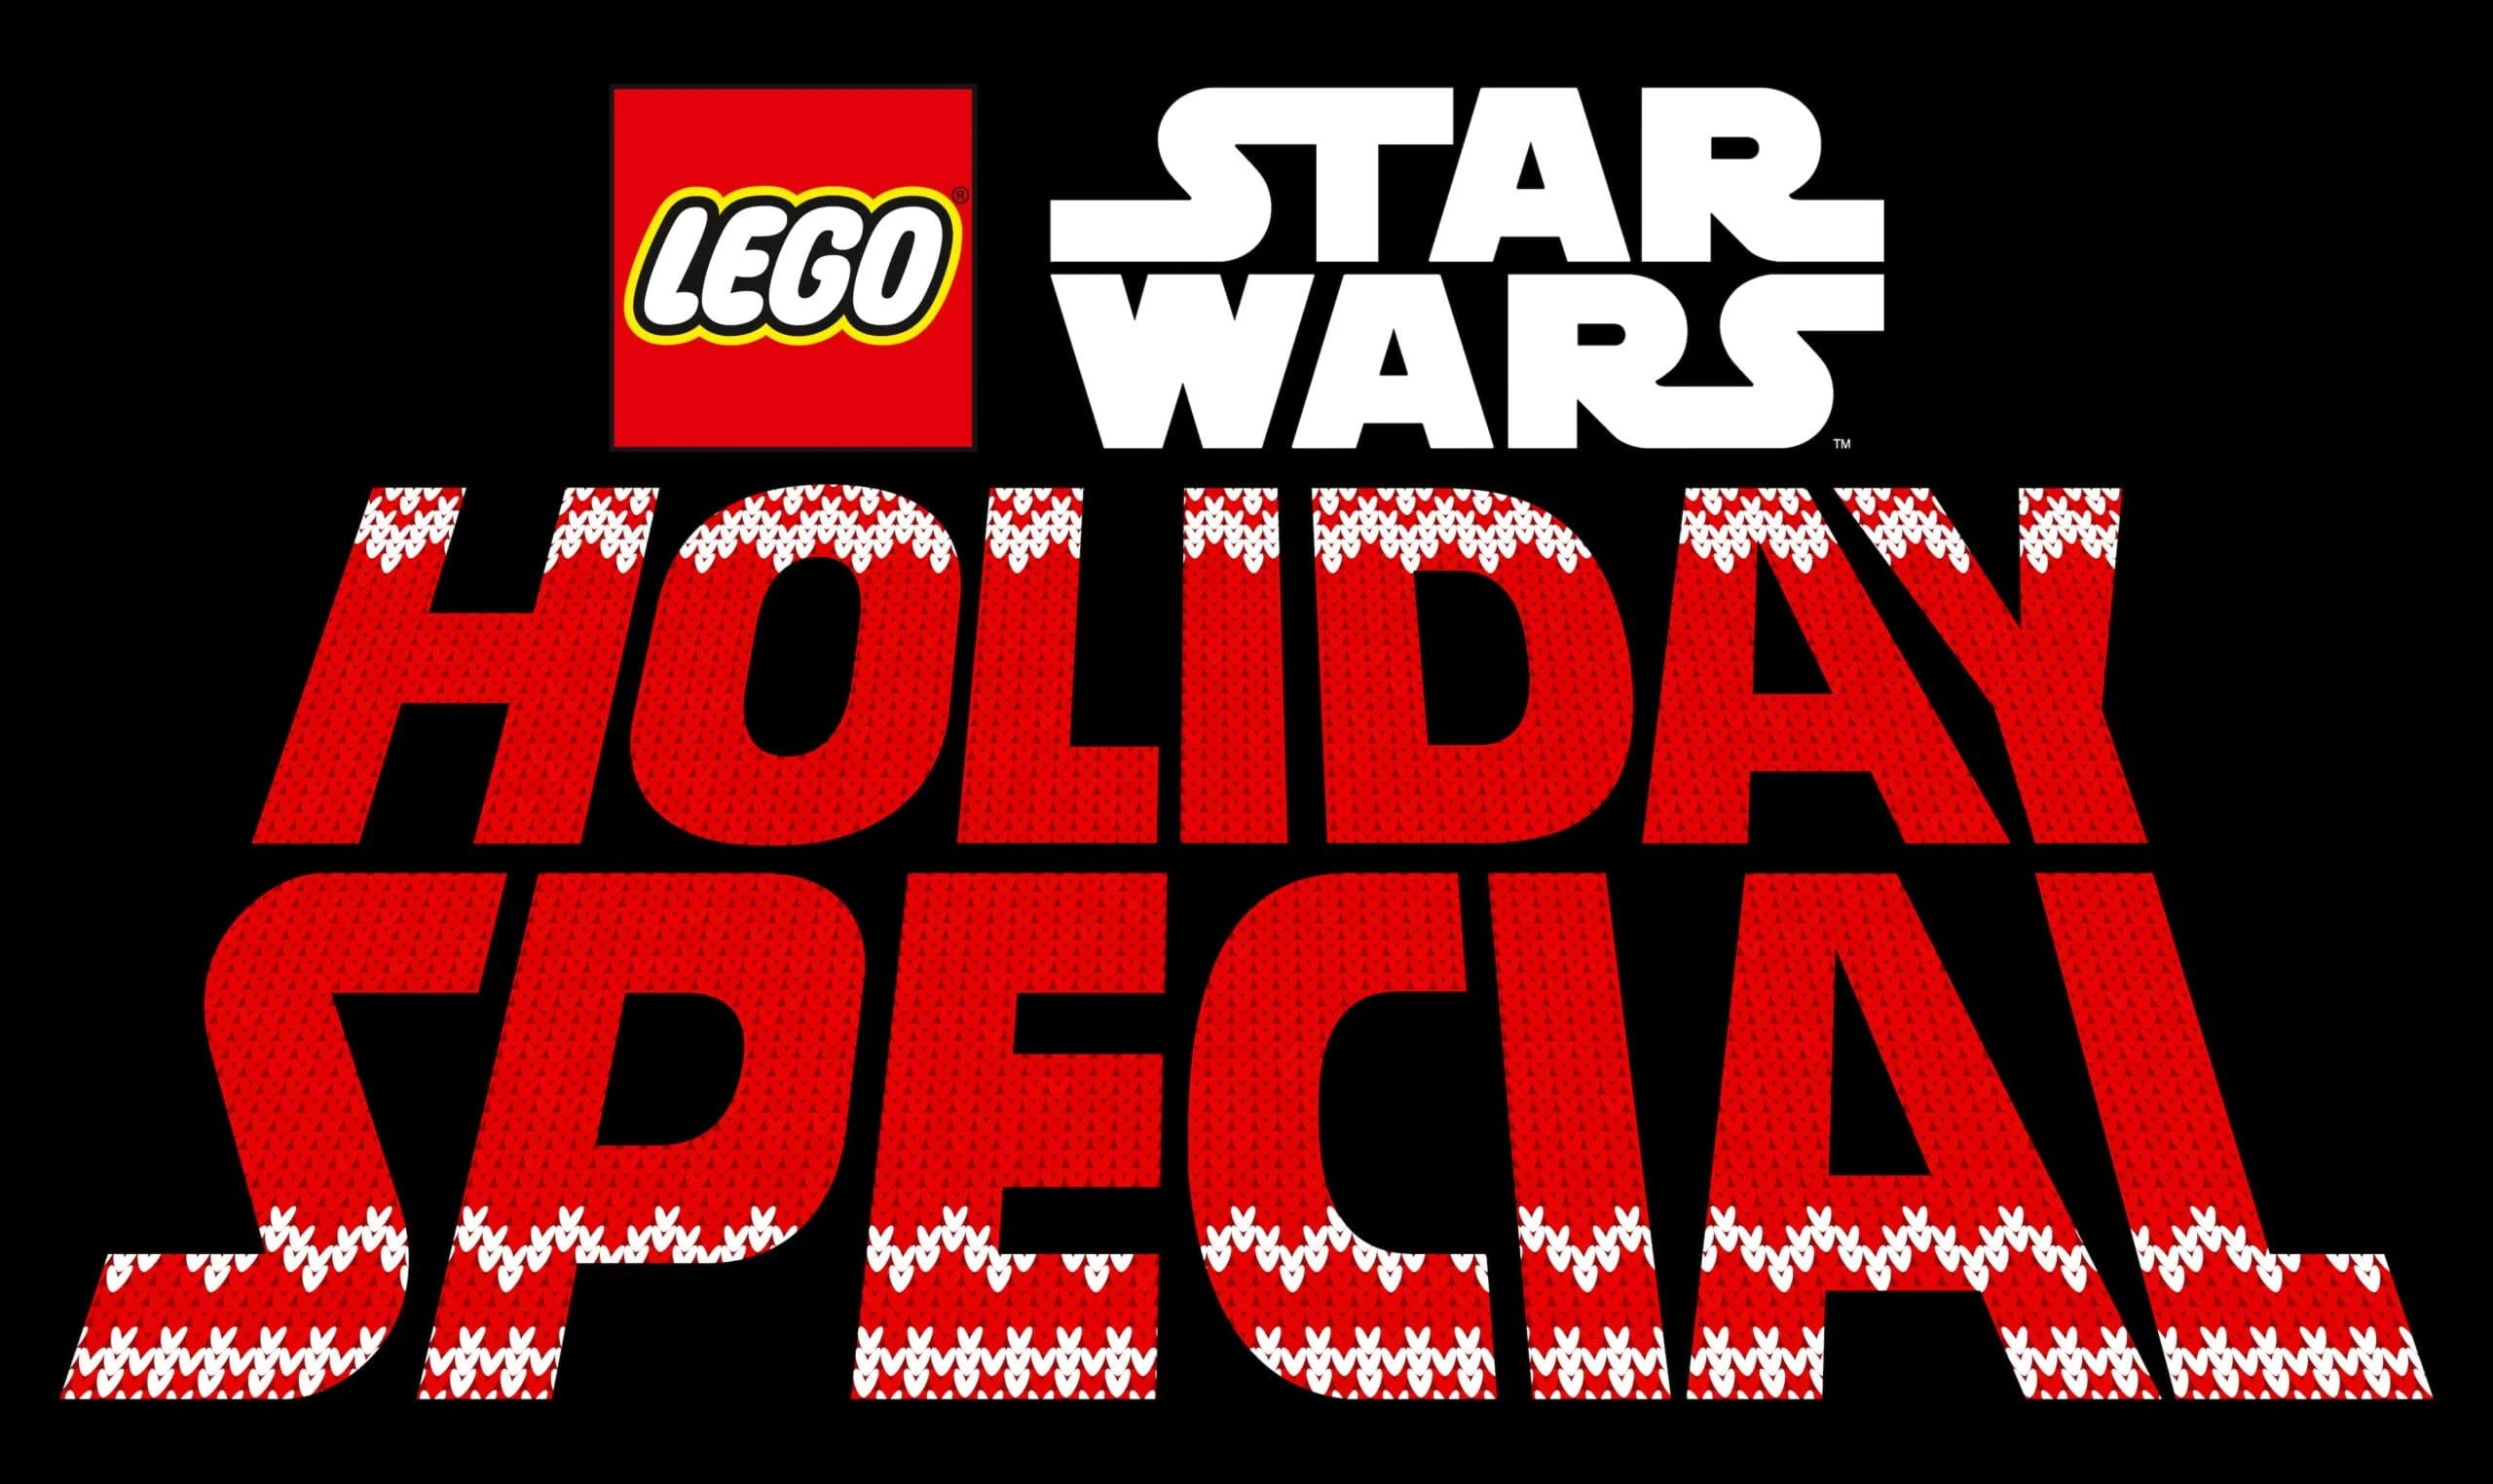 The LEGO Star Wars Holiday Special. The LEGO Star Wars Holiday Special reunites Rey, Finn, Poe, Chewie, Rose, and the droids for a joyous feast on Life Day. Join BB-8 on a new adventure to gain a deeper knowledge of the Force premiering on Disney+ November 17.